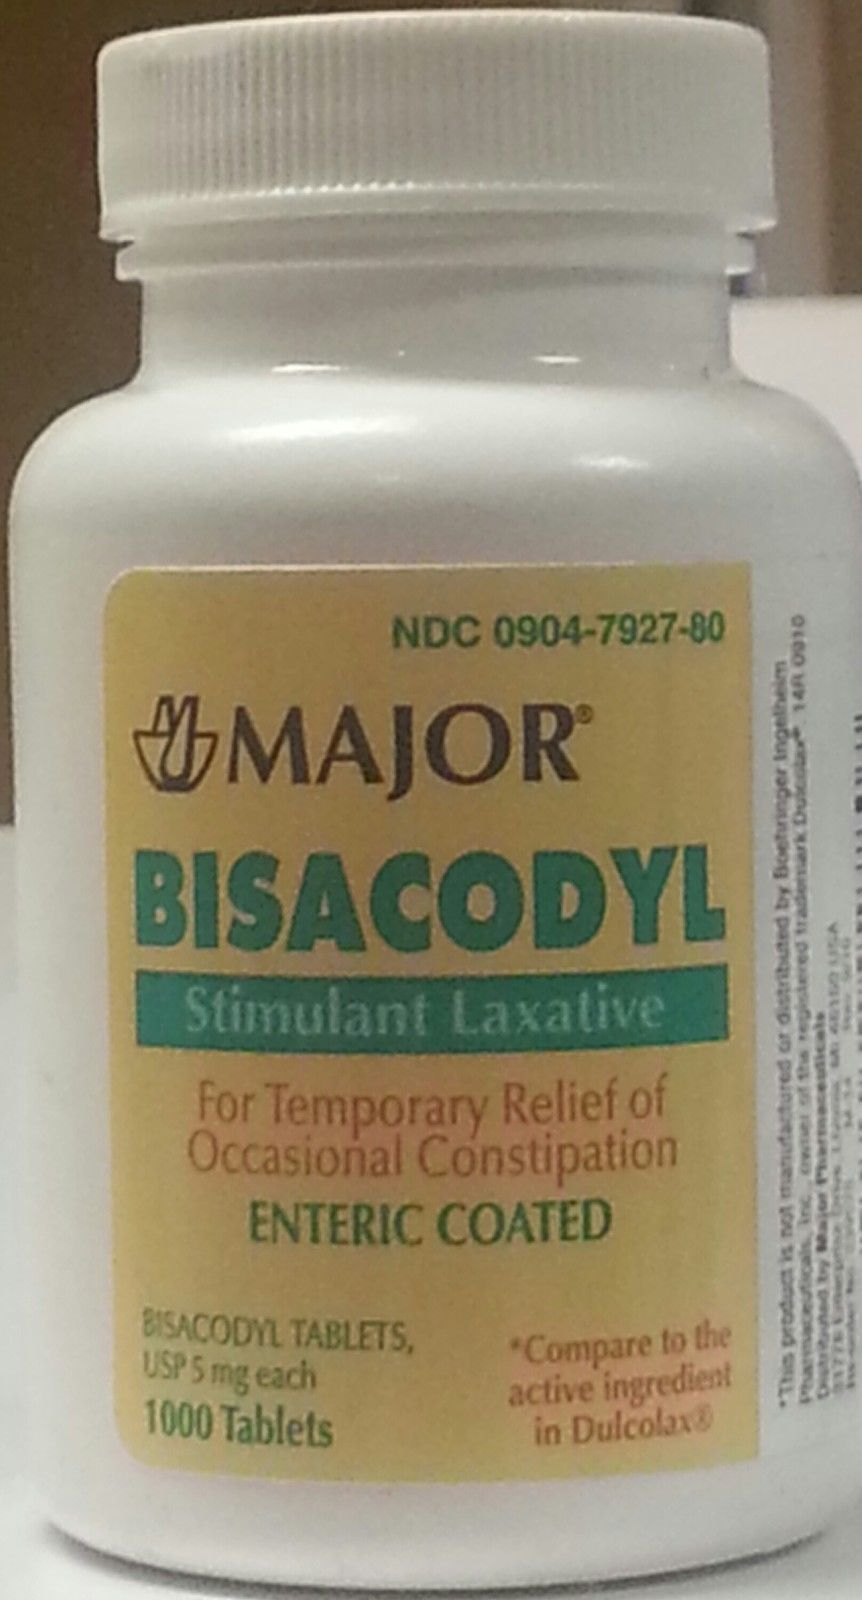 Bisacodyl (Dulcolax) 5 Mg Enteric Coated Stimulant Laxative - 1,000 Tablets (Major)